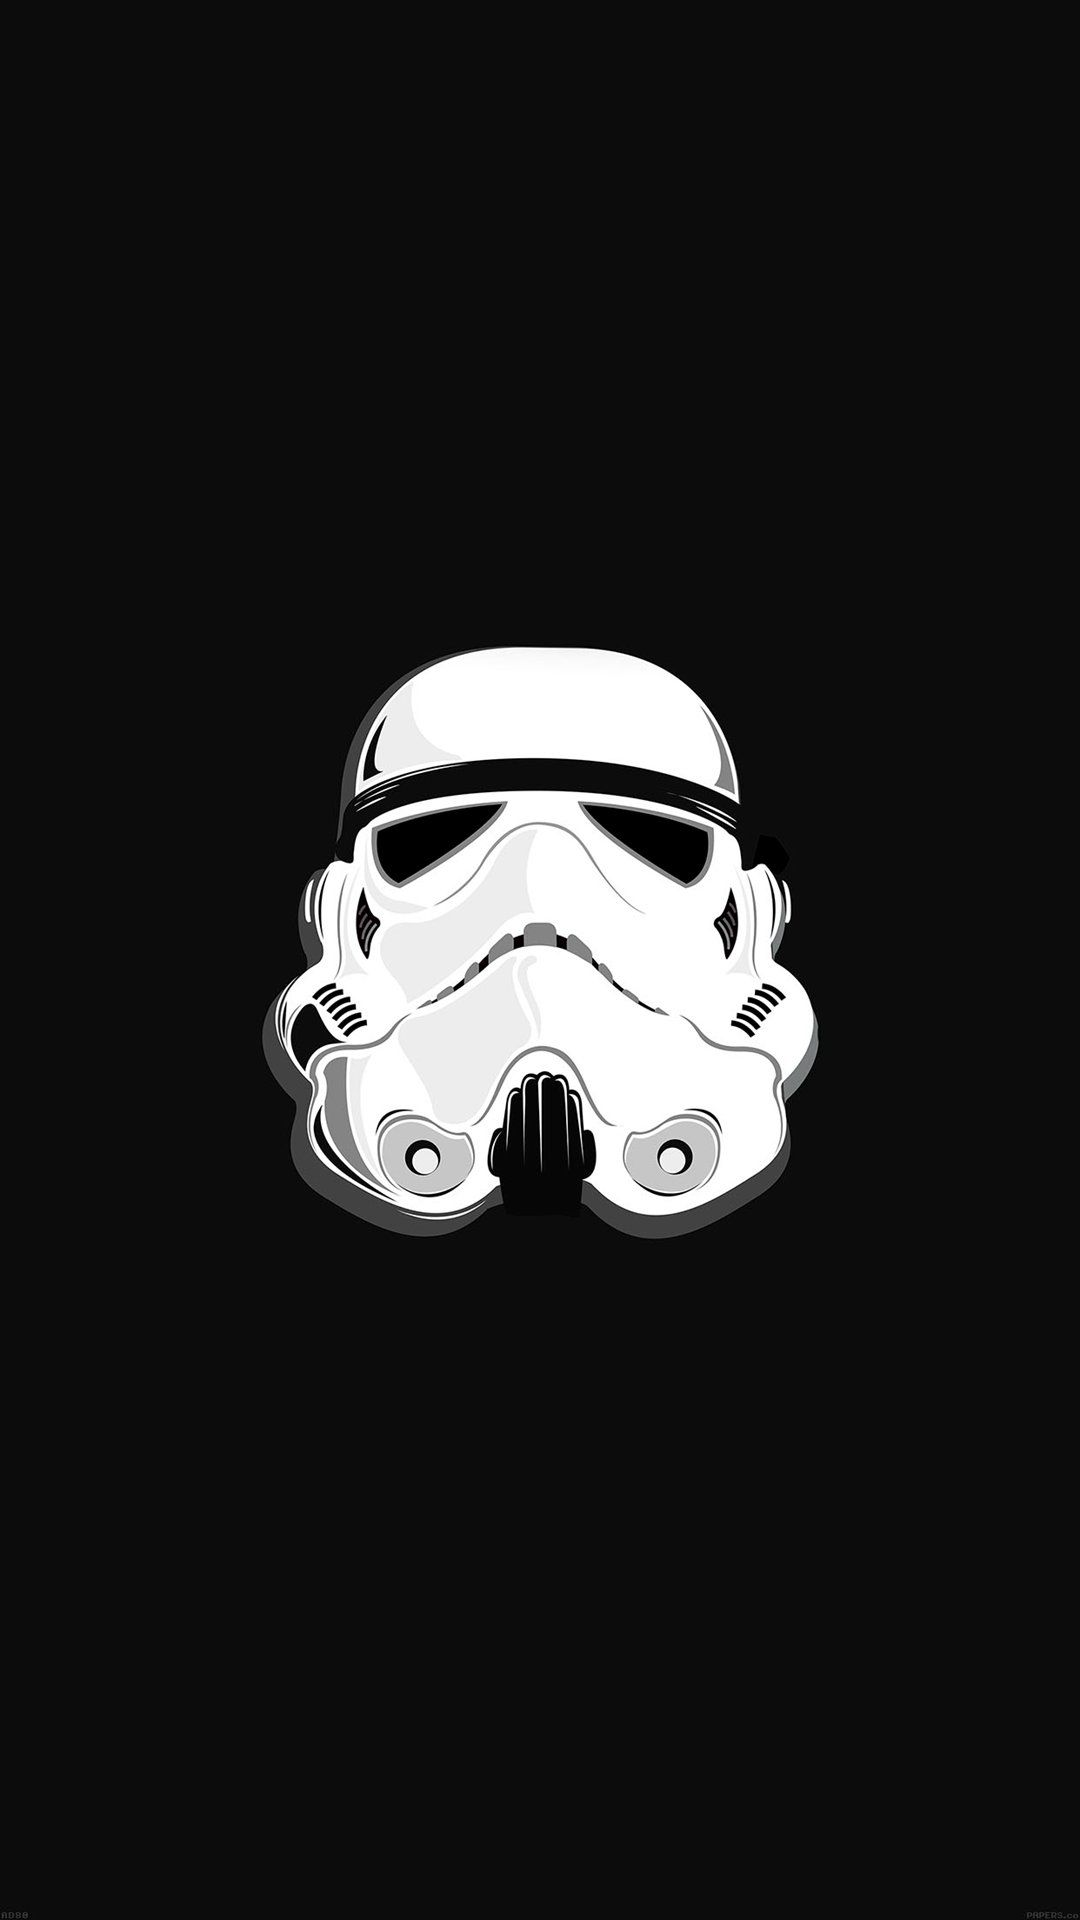 Star Wars Stormtrooper Illustration Iphone 6 Wallpaper Download Iphone Wallpape Star Wars Wallpaper Iphone Star Wars Illustration Android Wallpaper Star Wars